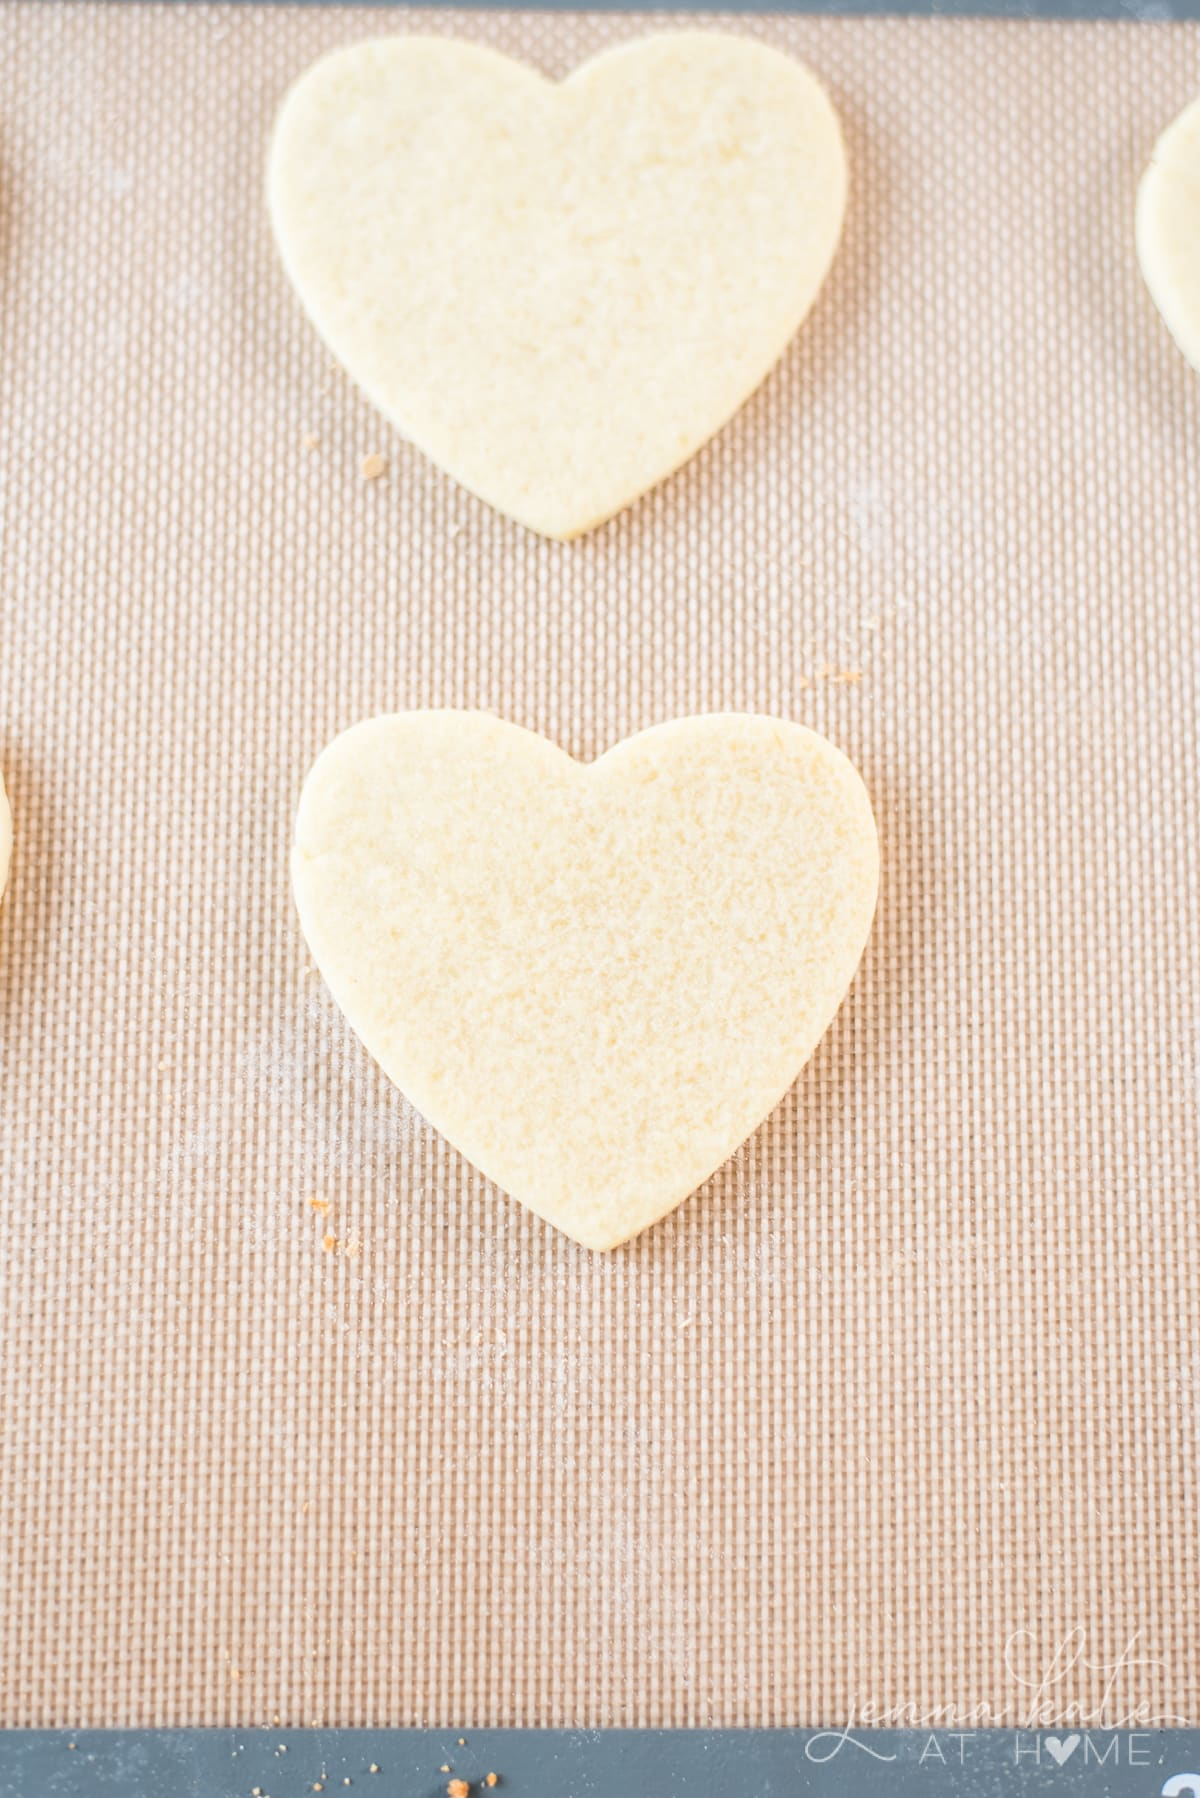 How to stop sugar cookie cutouts from spreading: chill and use a silicone baking sheet